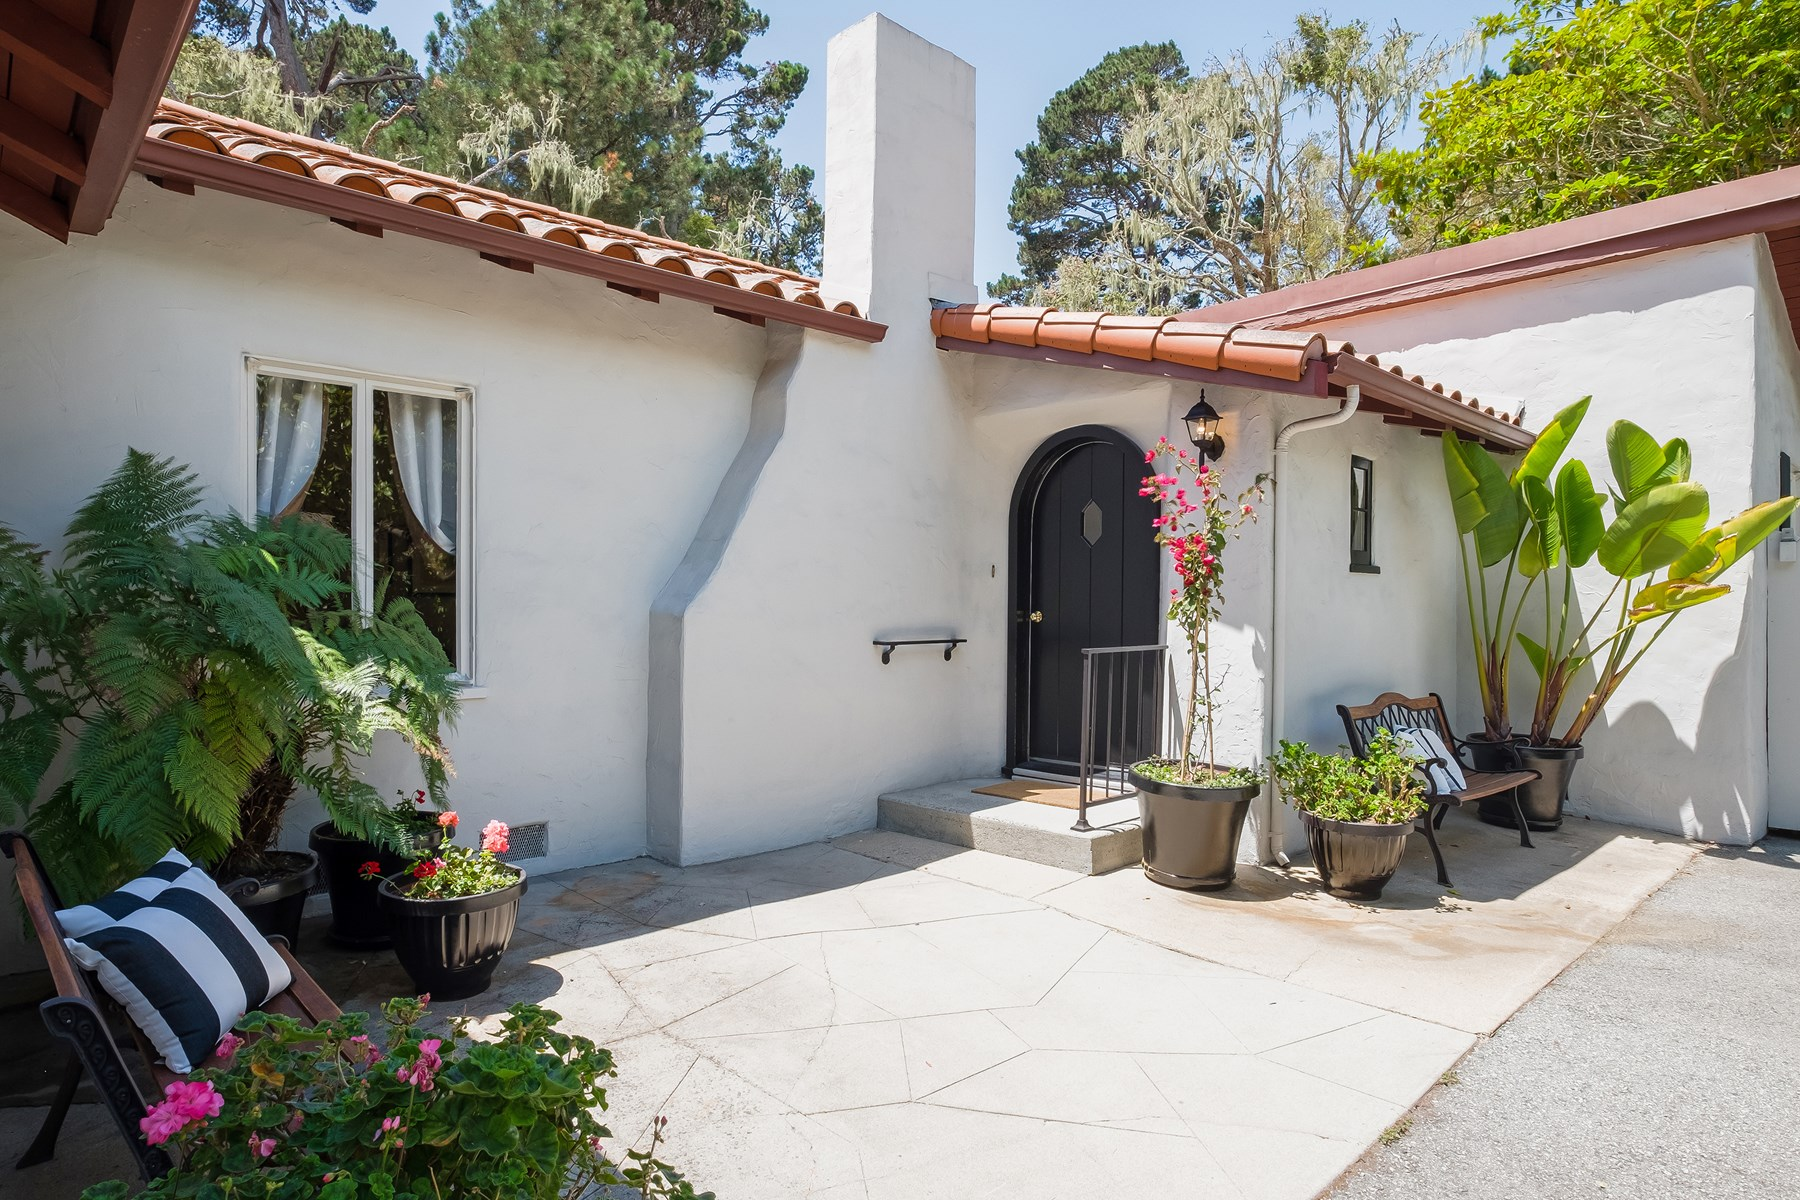 Single Family Home for Sale at Spanish Treasure in Heart of Monterey 1100 Pacific Street Monterey, California, 93940 United States